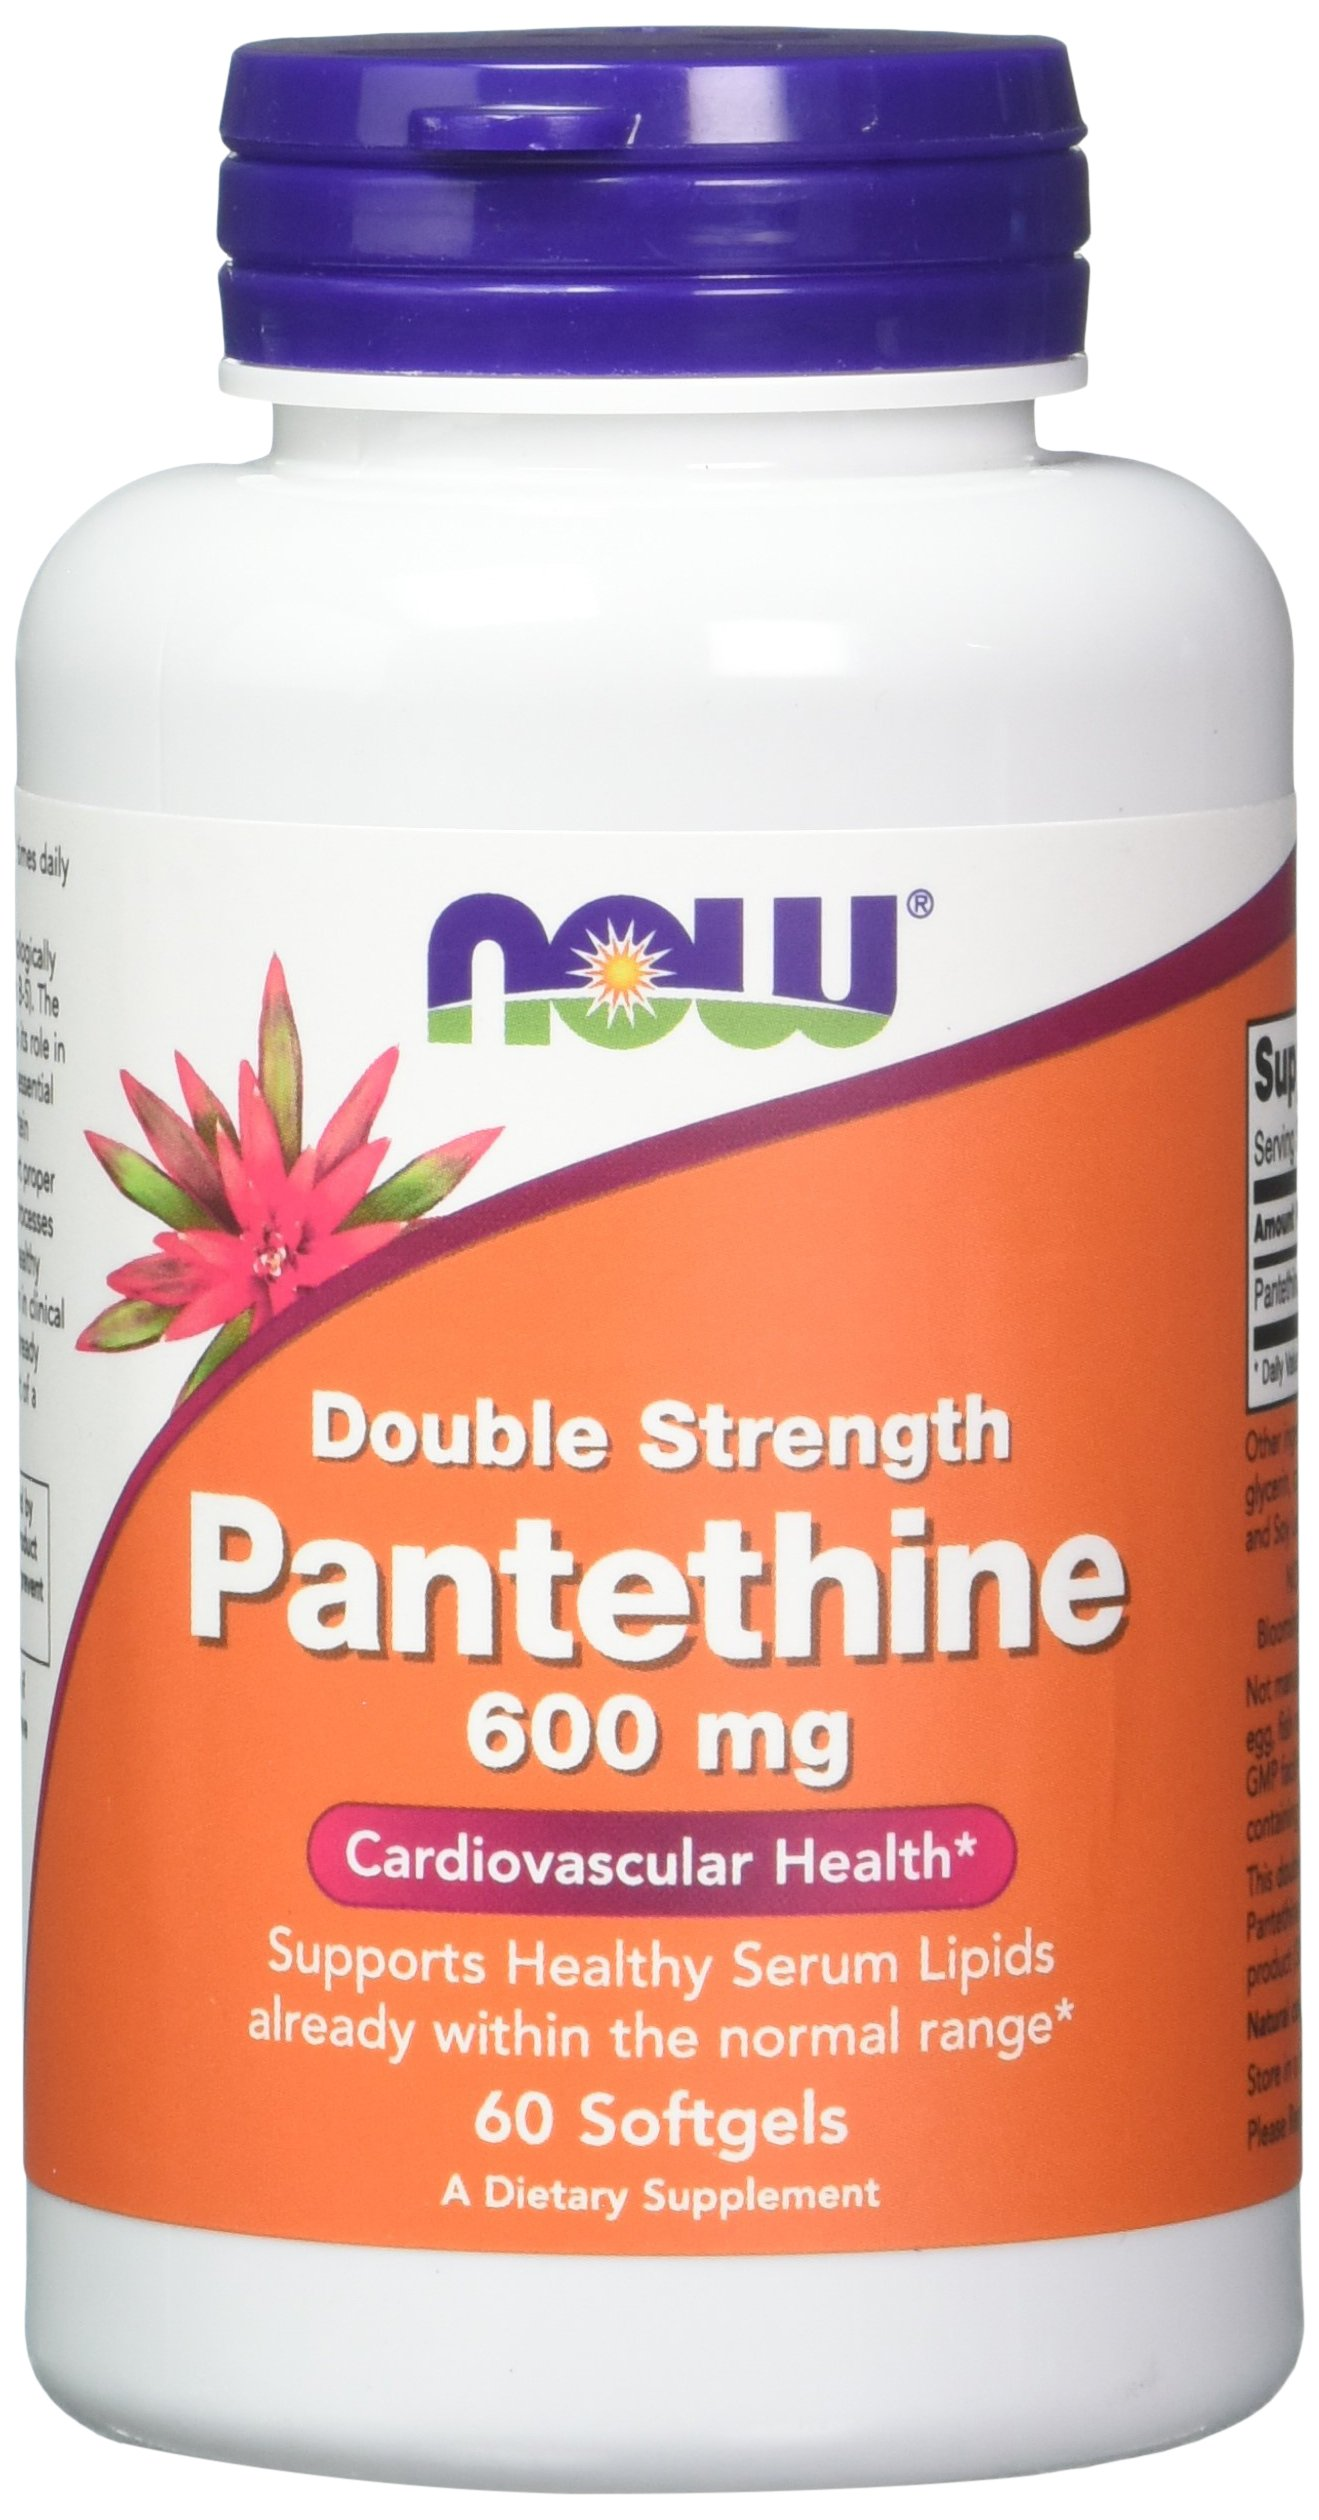 Pantethine, 600 mg 60 Softgels (Pack of 2) by NOW Foods